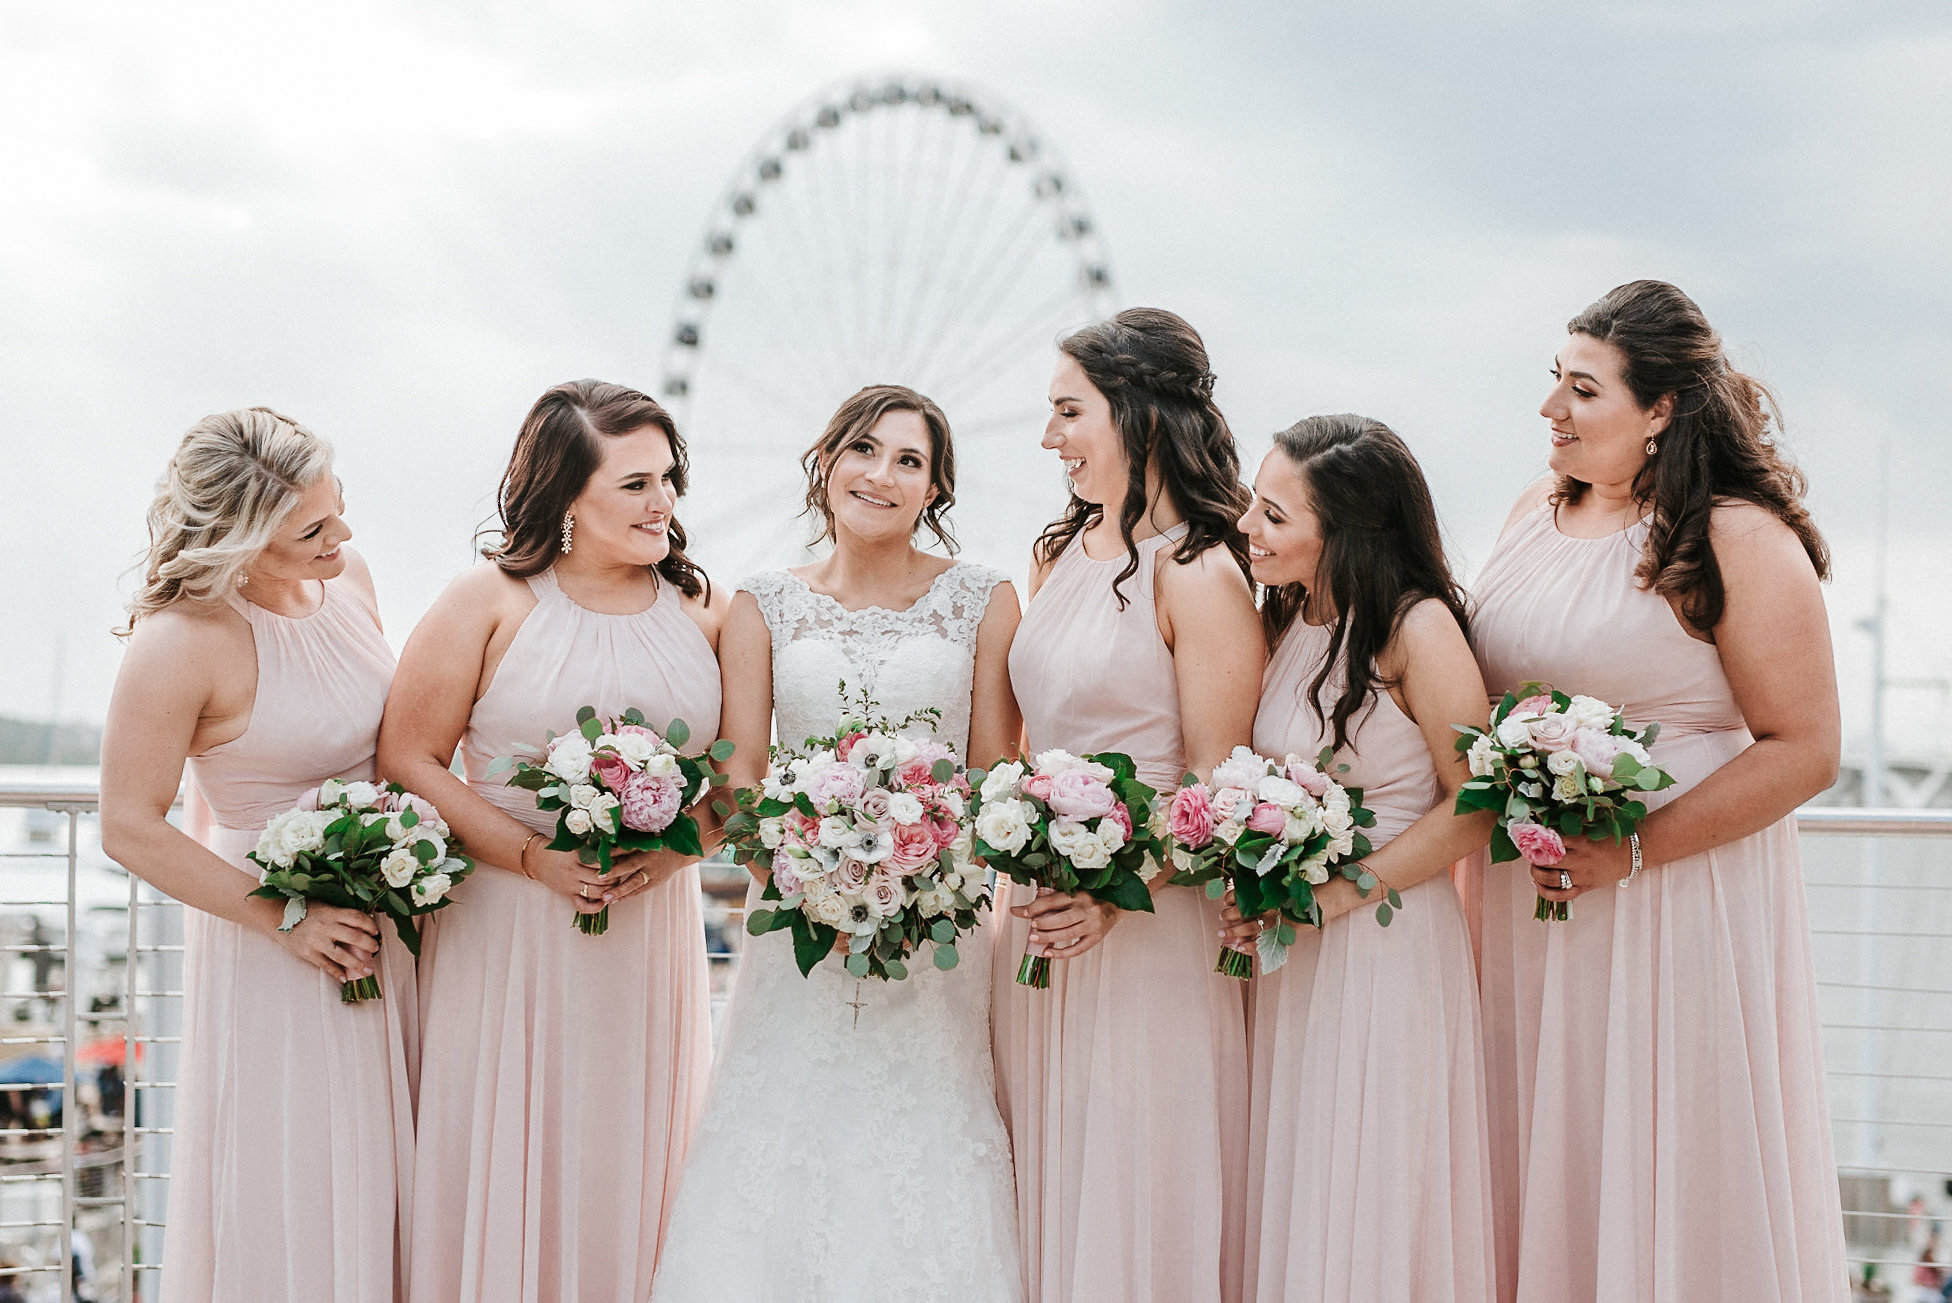 Bride and bridesmaids standing in front of ferris wheel